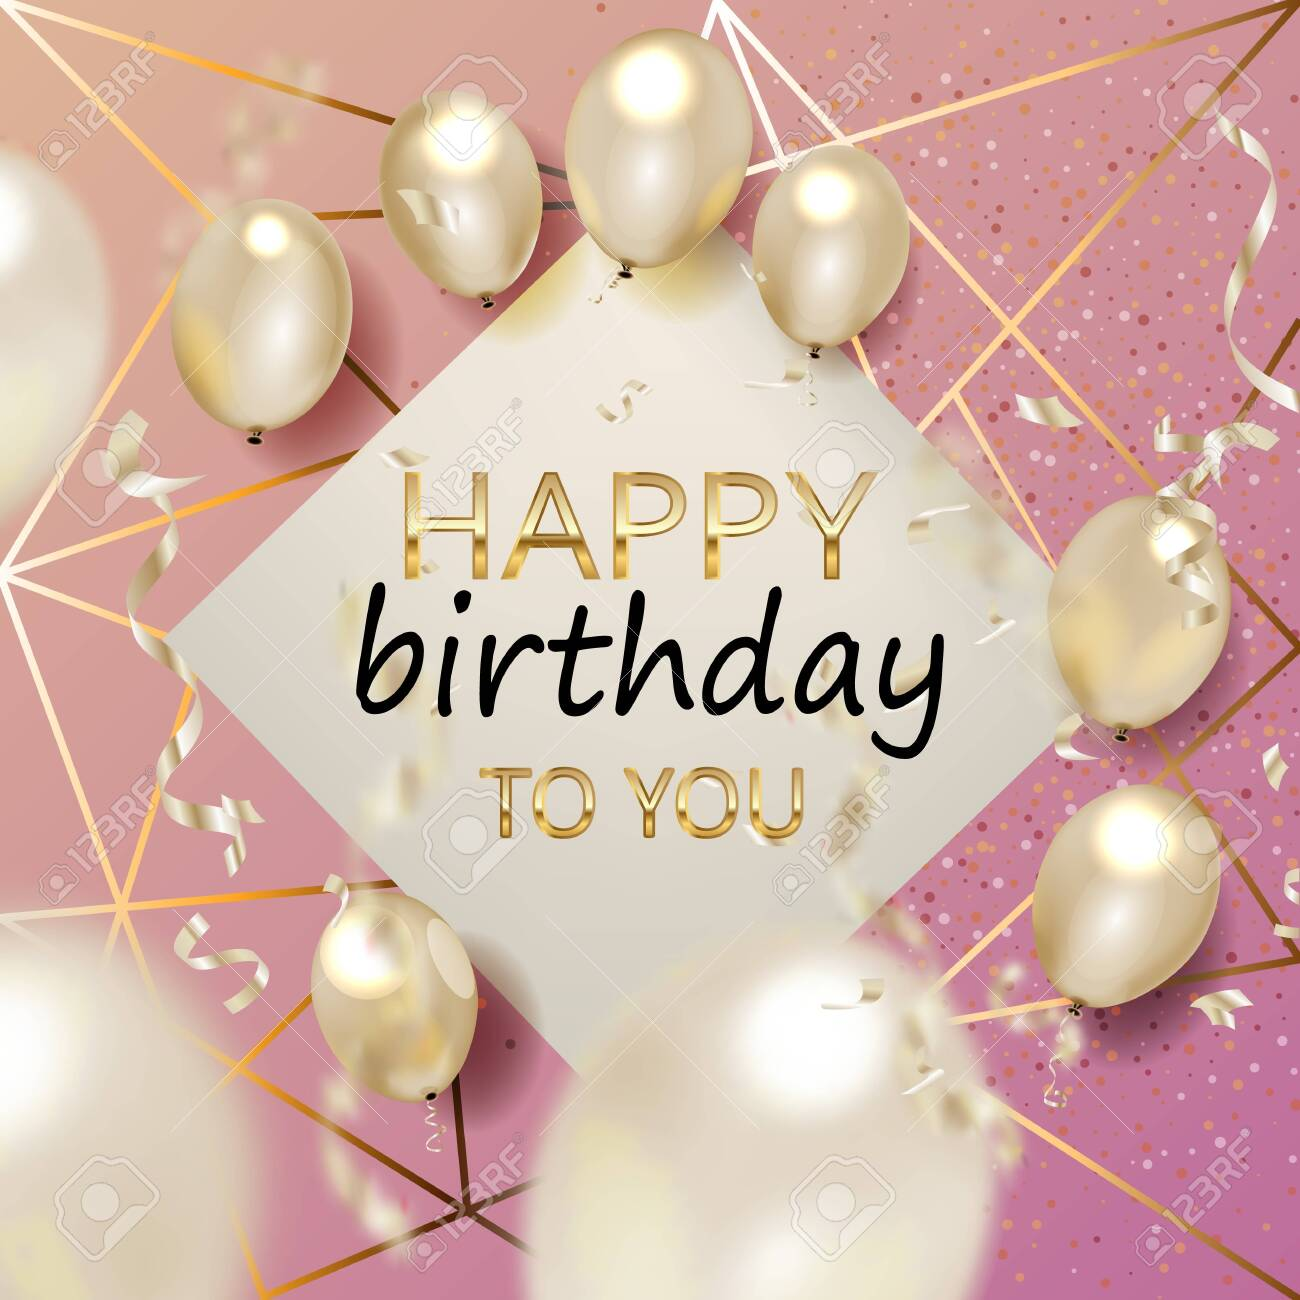 Birthday elegant greeting card with gold balloons and falling confetti Vector - 132553205